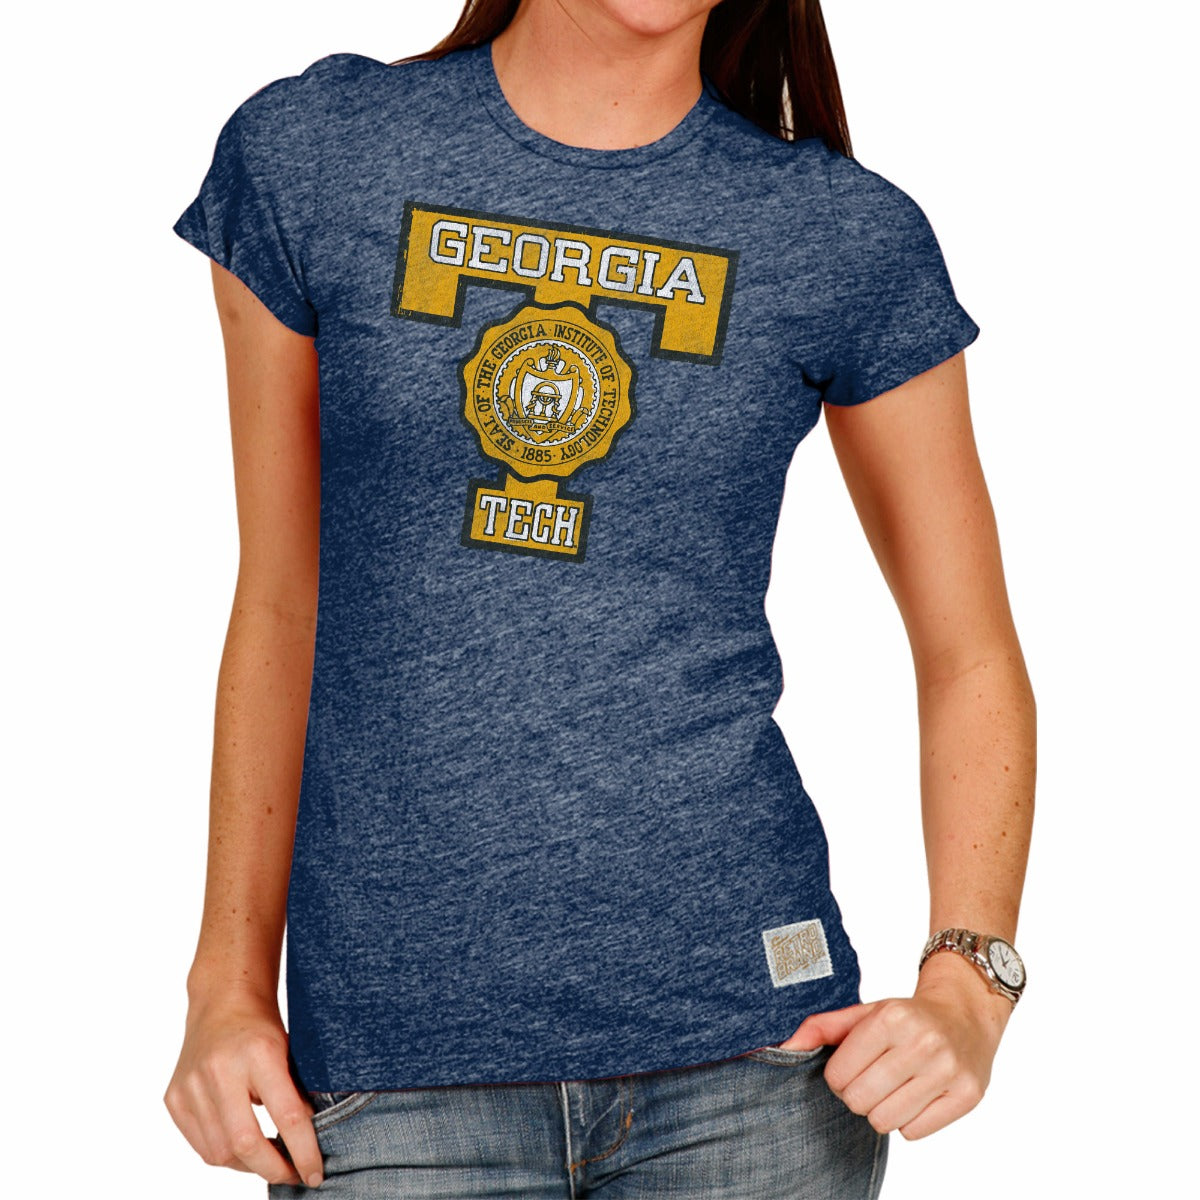 Georgia Tech Yellow Jackets Women's Short Sleeve Vintage Tee